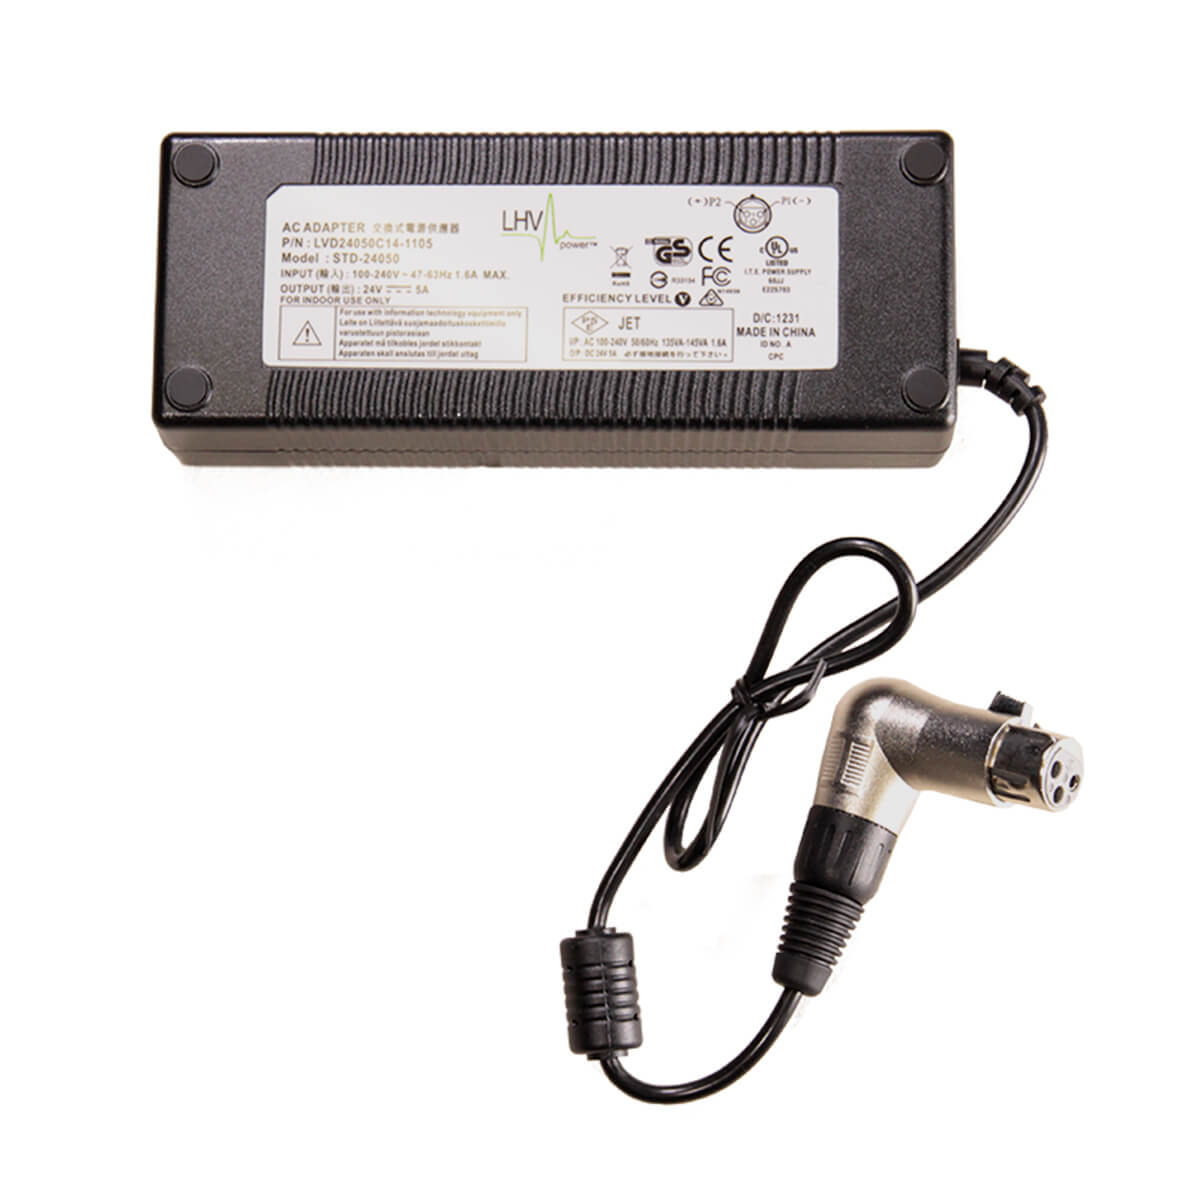 Sola 6/Inca 6 Power Supply